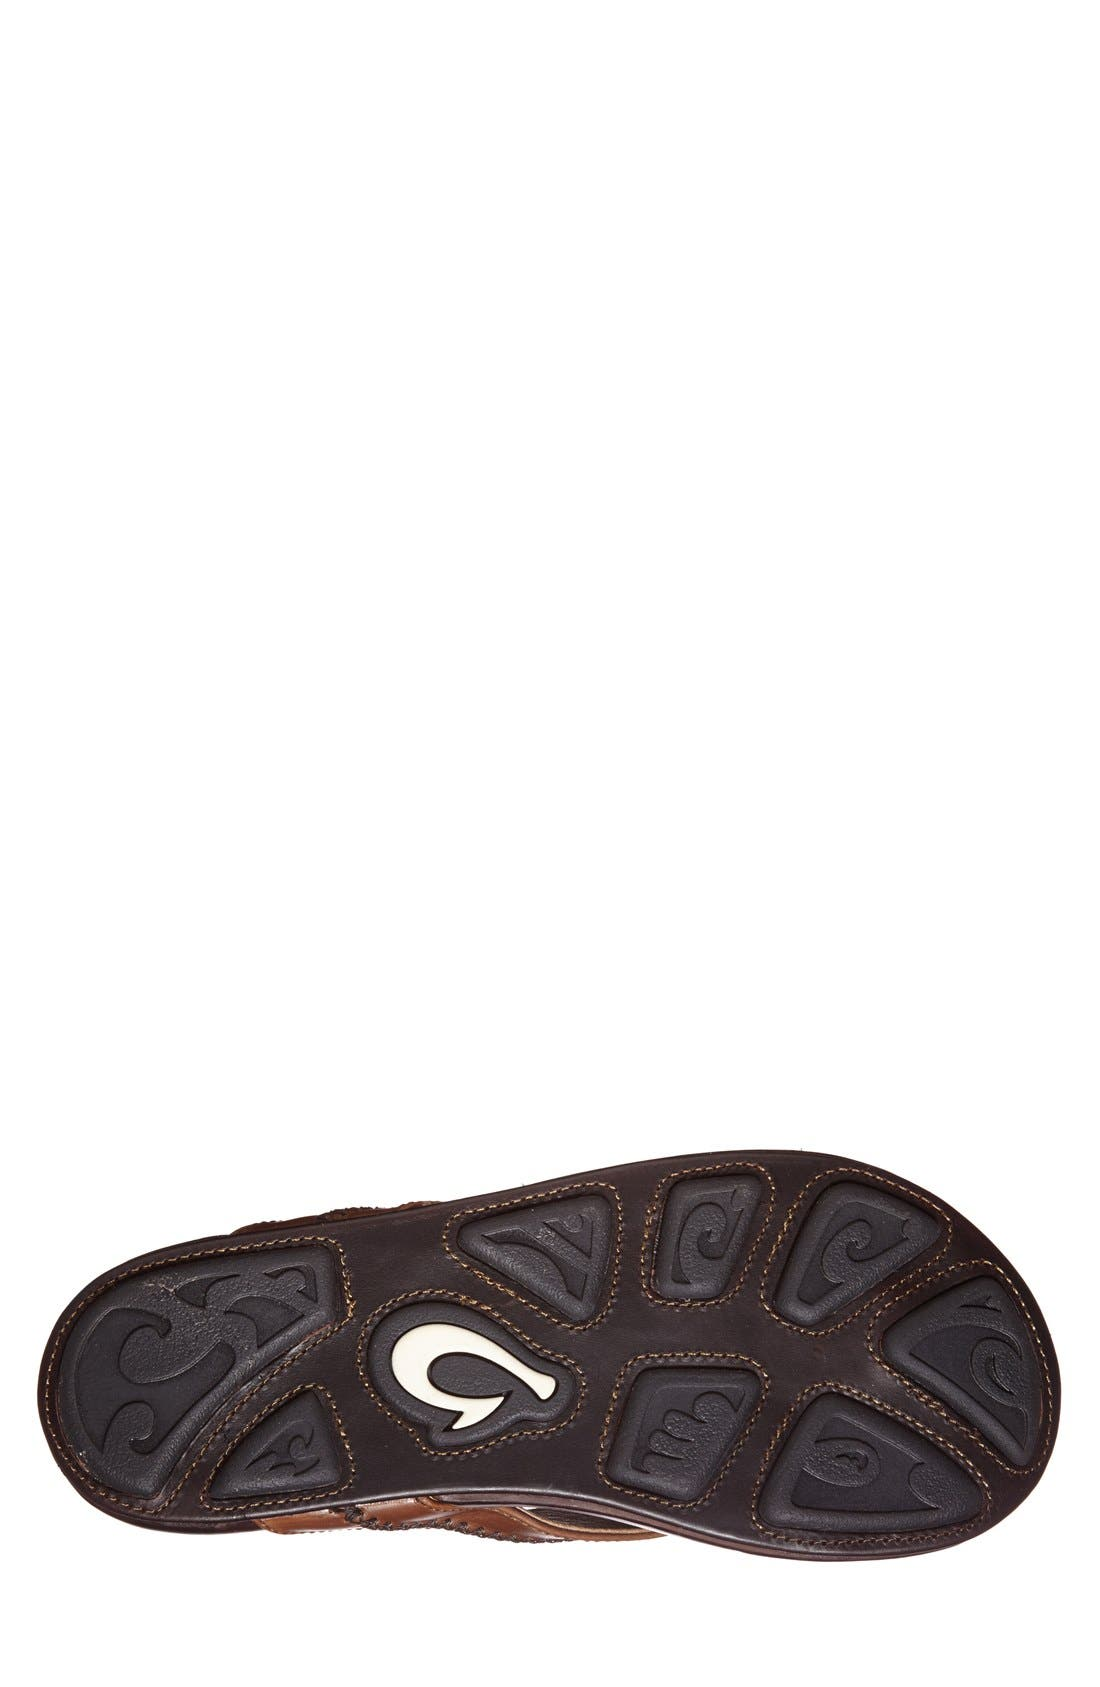 Alternate Image 4  - OluKai 'Mea Ola' Flip Flop (Men)